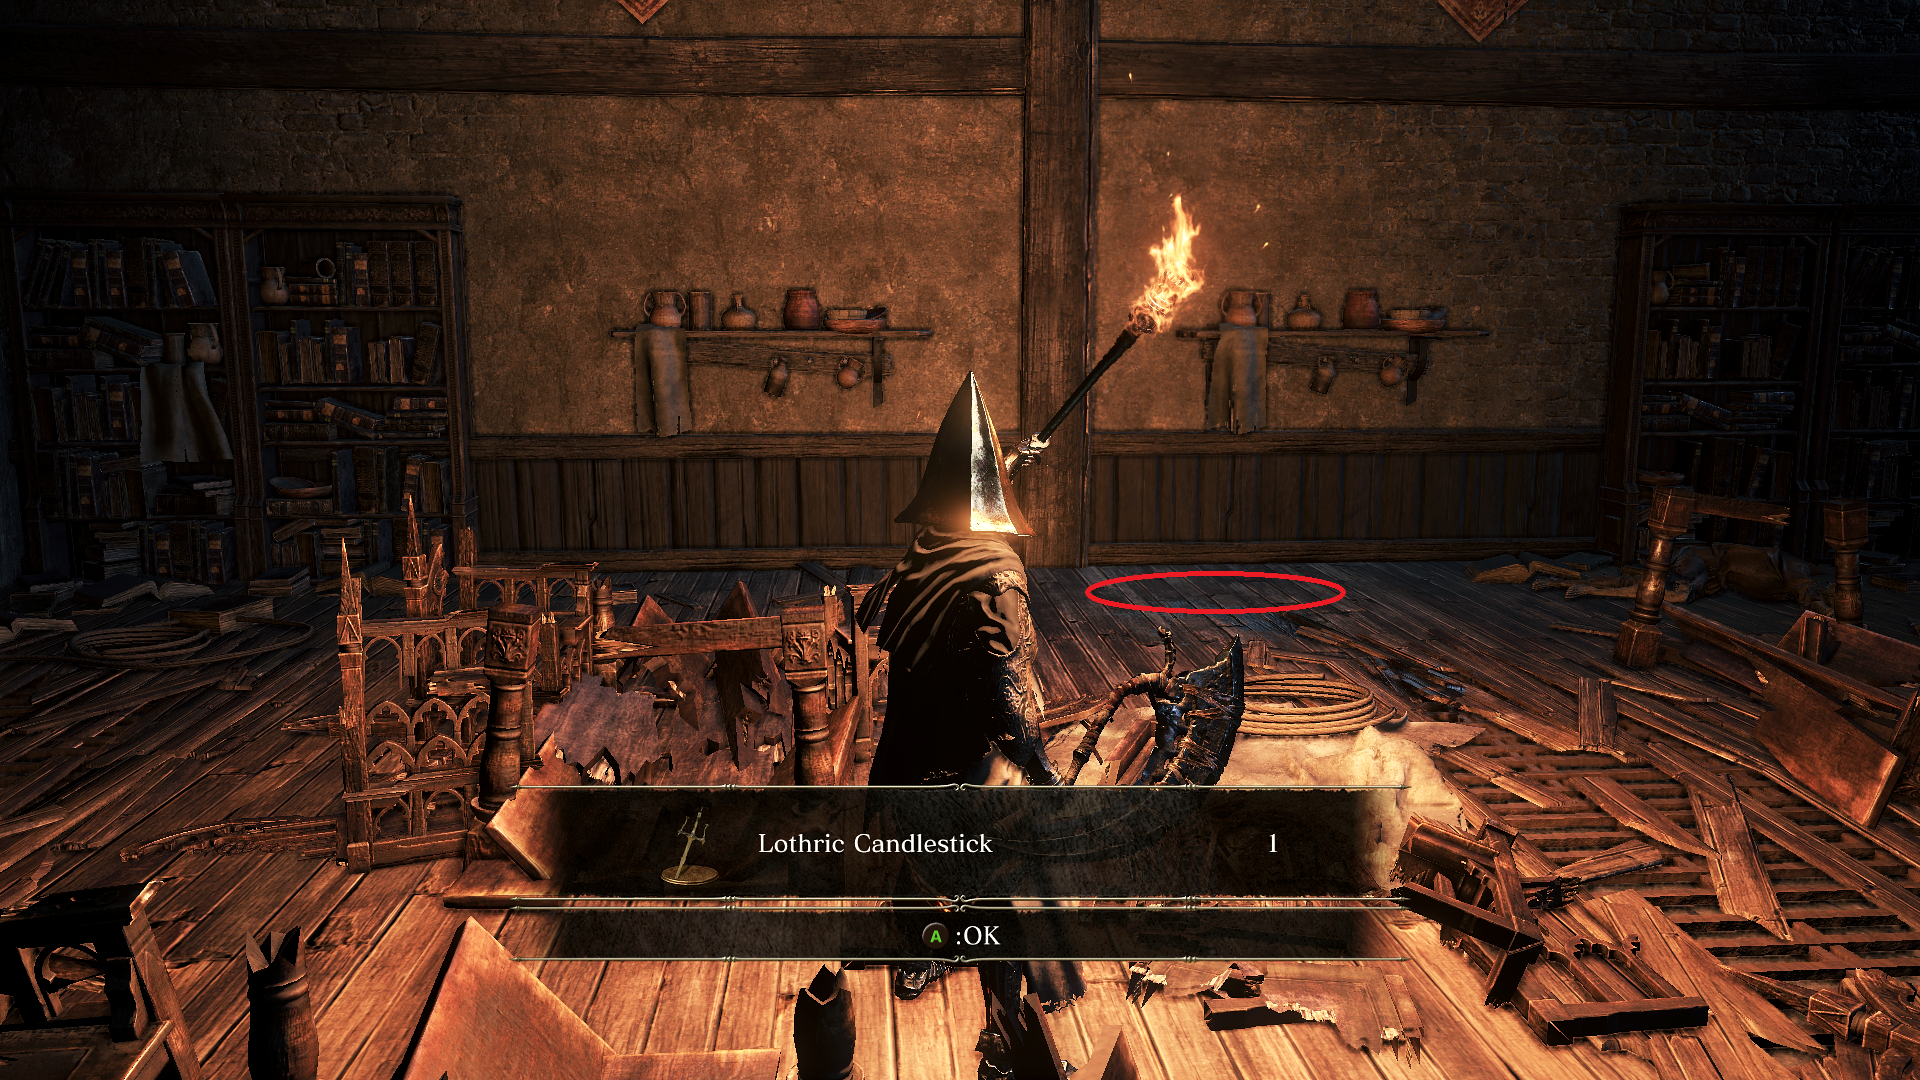 lothric_candlestick.png